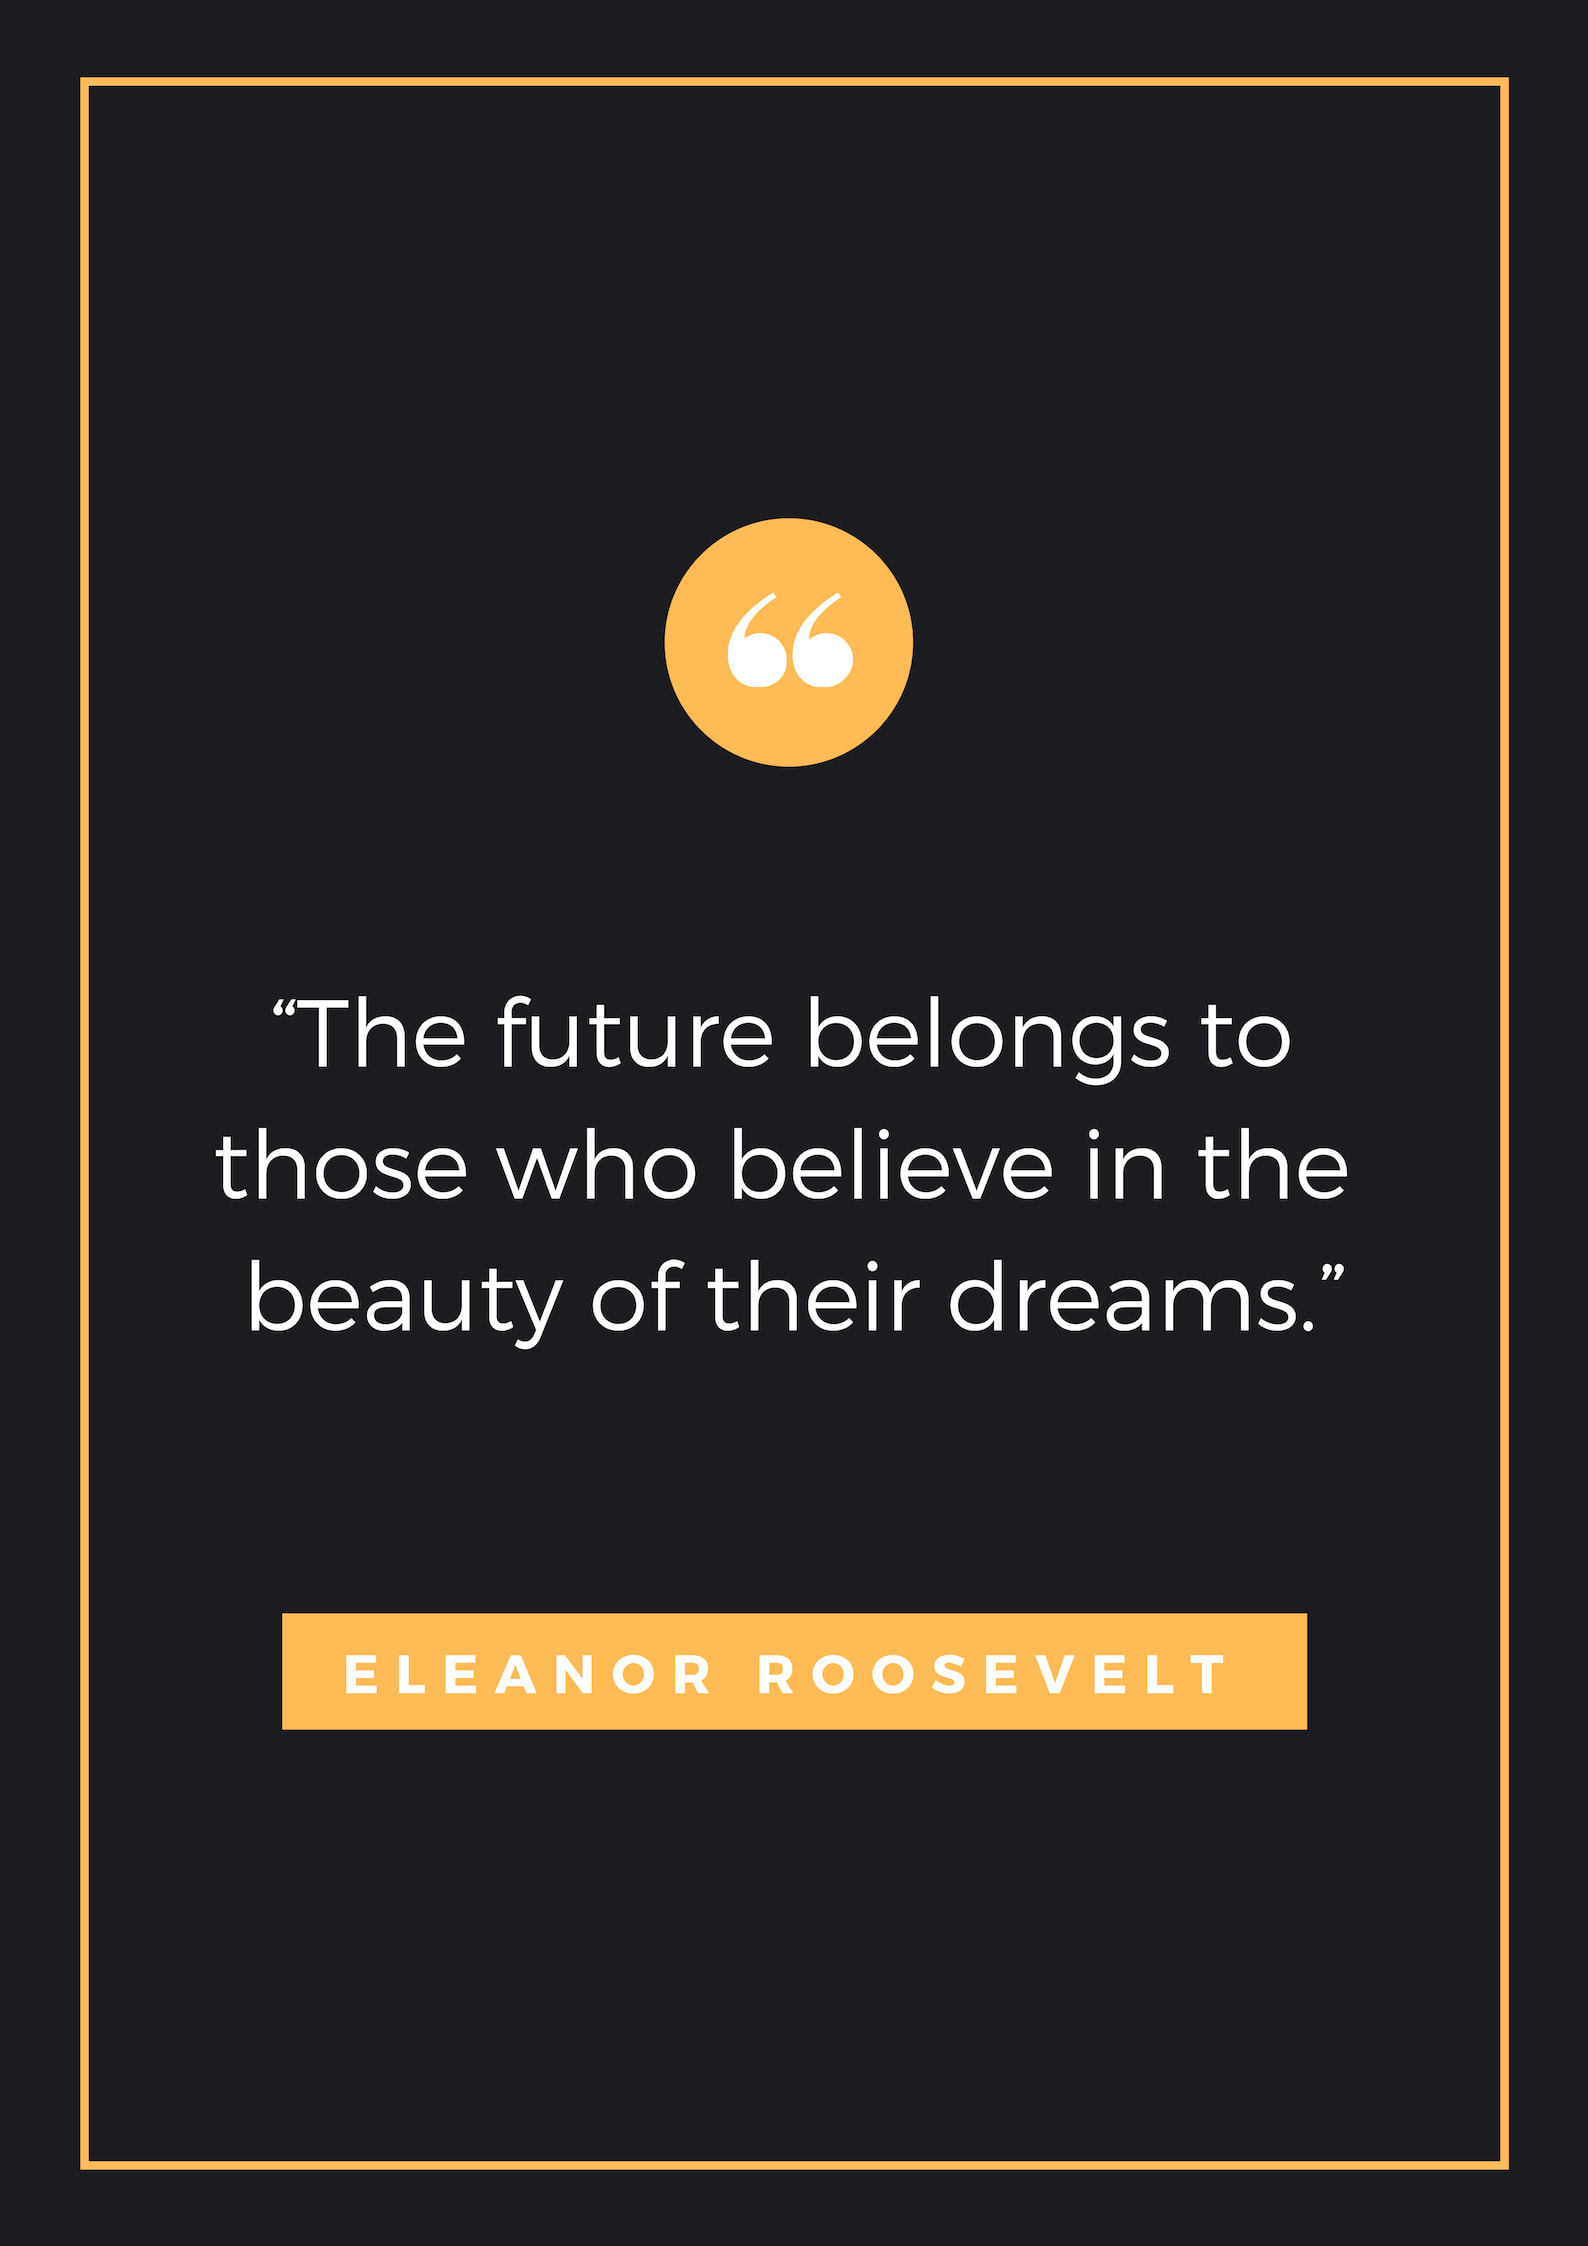 4 inspirational quotes for students